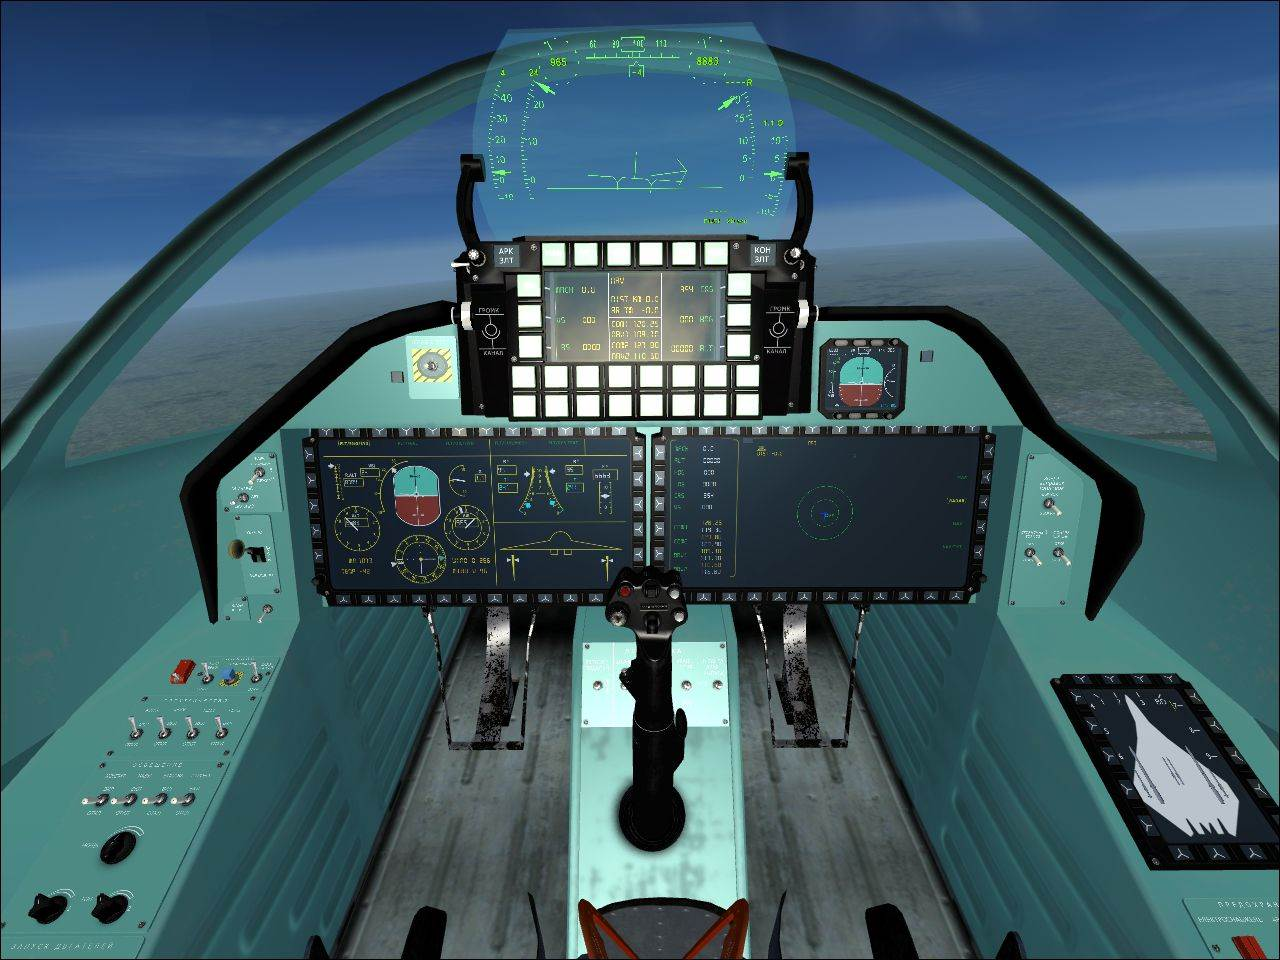 best helicopter simulator pc with Search on Search further MqW0IzR8U7c as well Aerofly Rc 7 Features moreover cxcsimulations further Fly With Laptops.